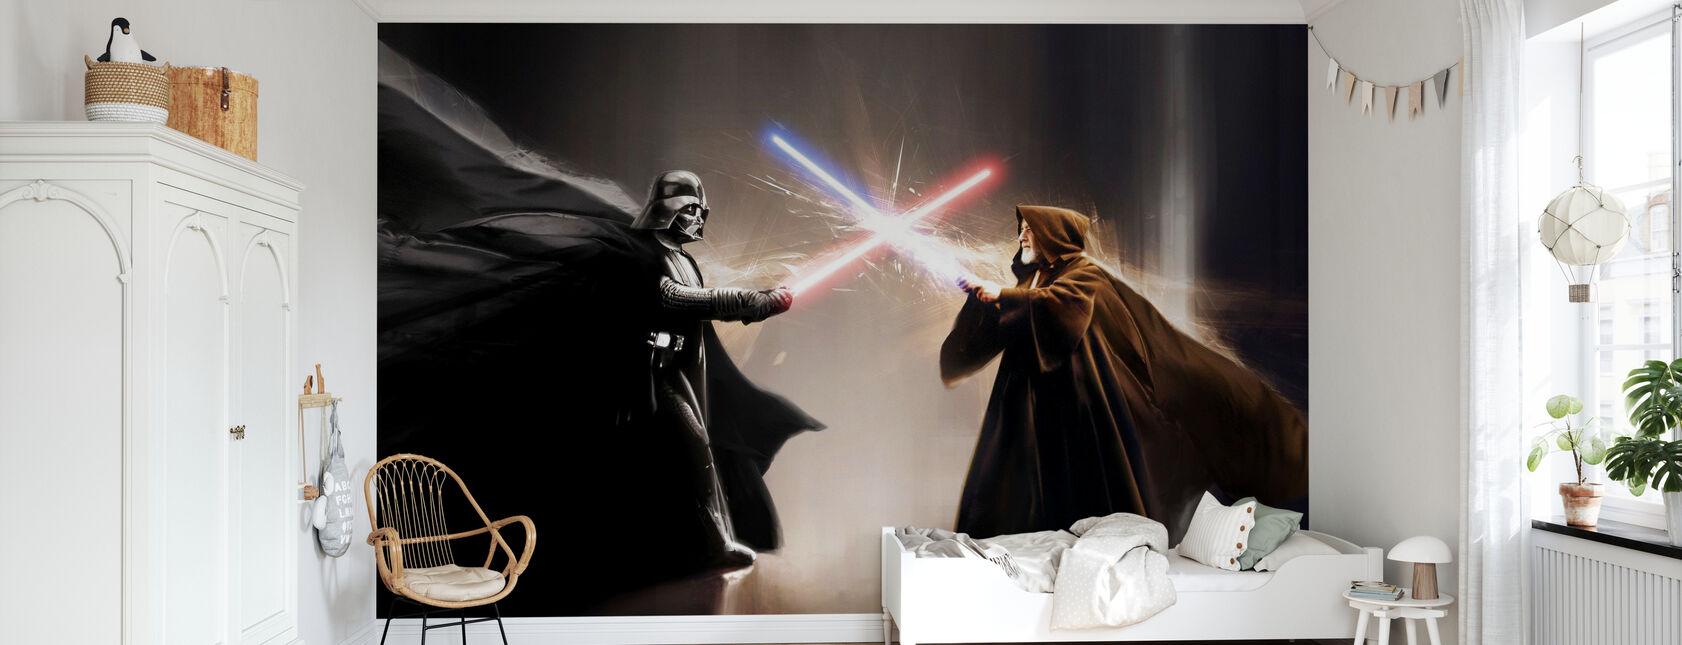 Star Wars - Darth Vader og Obi-Wan Kenobi - Tapet - Barnerom